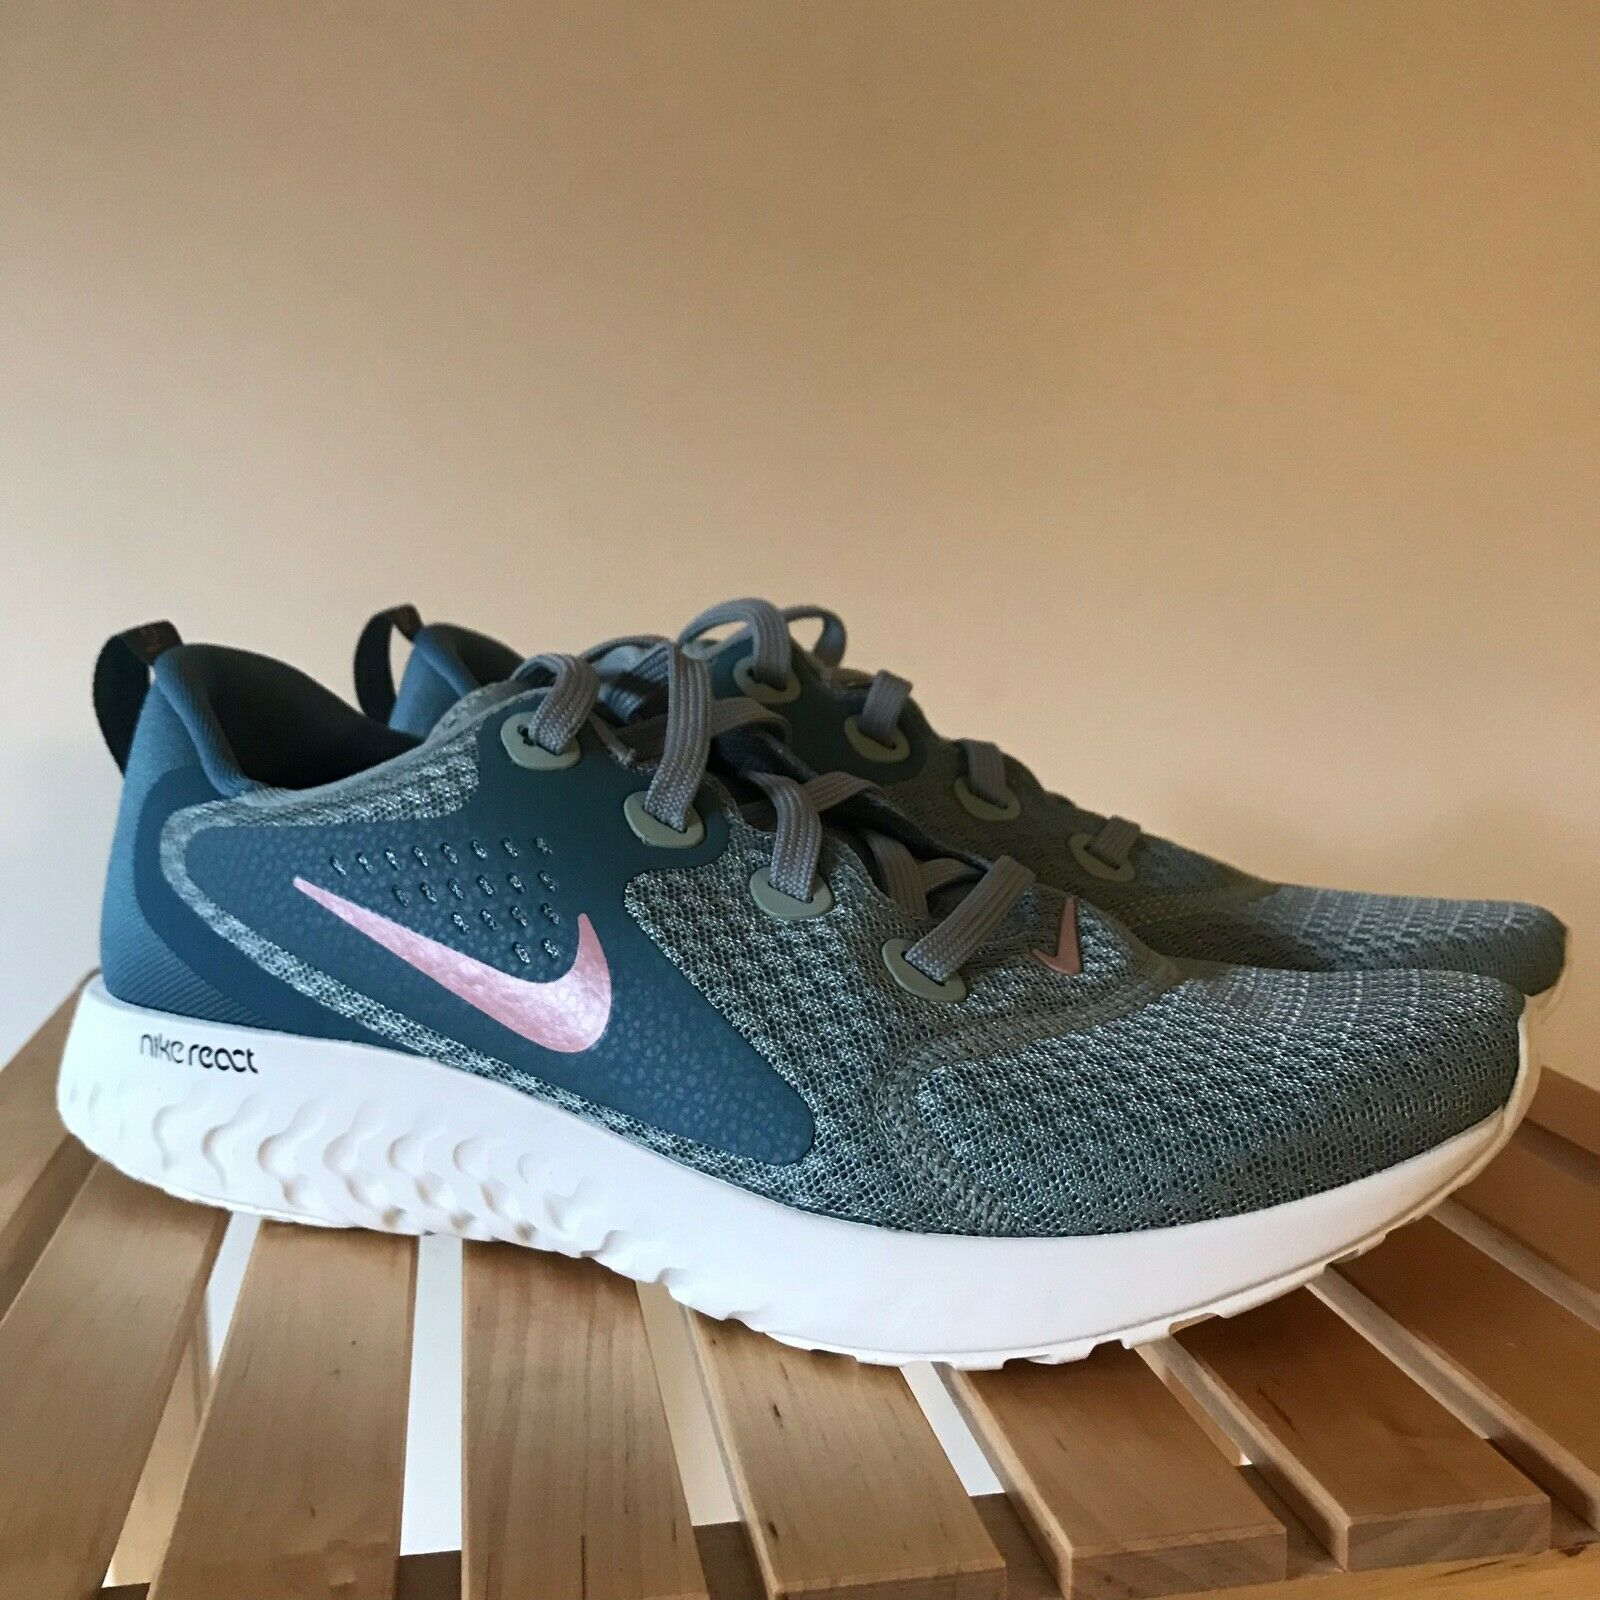 Nike Wmns Legend React Mica Green Rust Pink Running shoes AA1626-300 Size 11 NEW